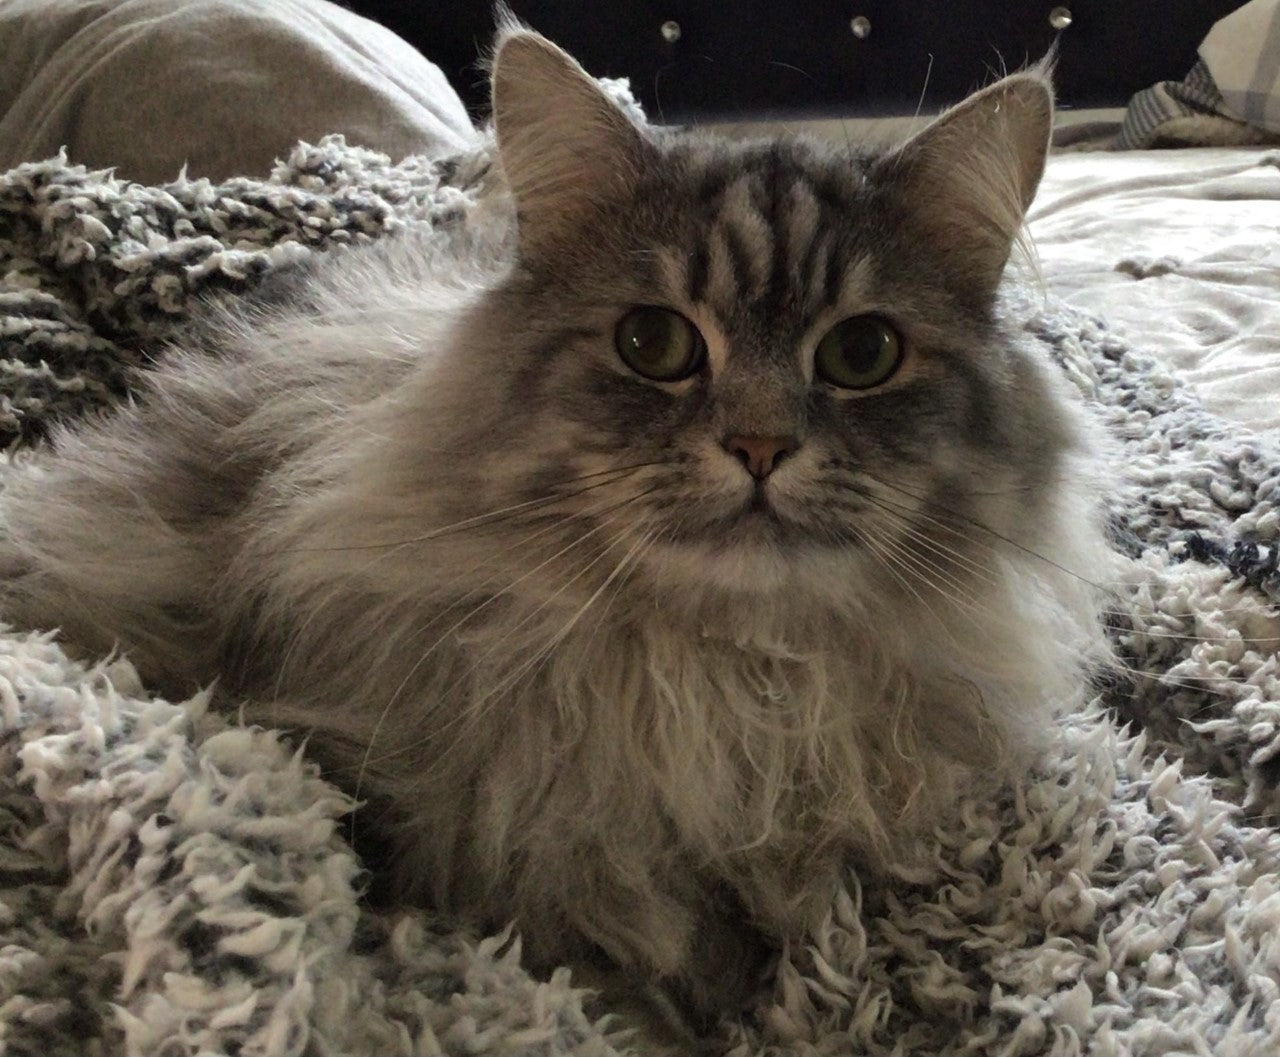 Long-haired grey cat Thumper sits on a fluffy blanket.